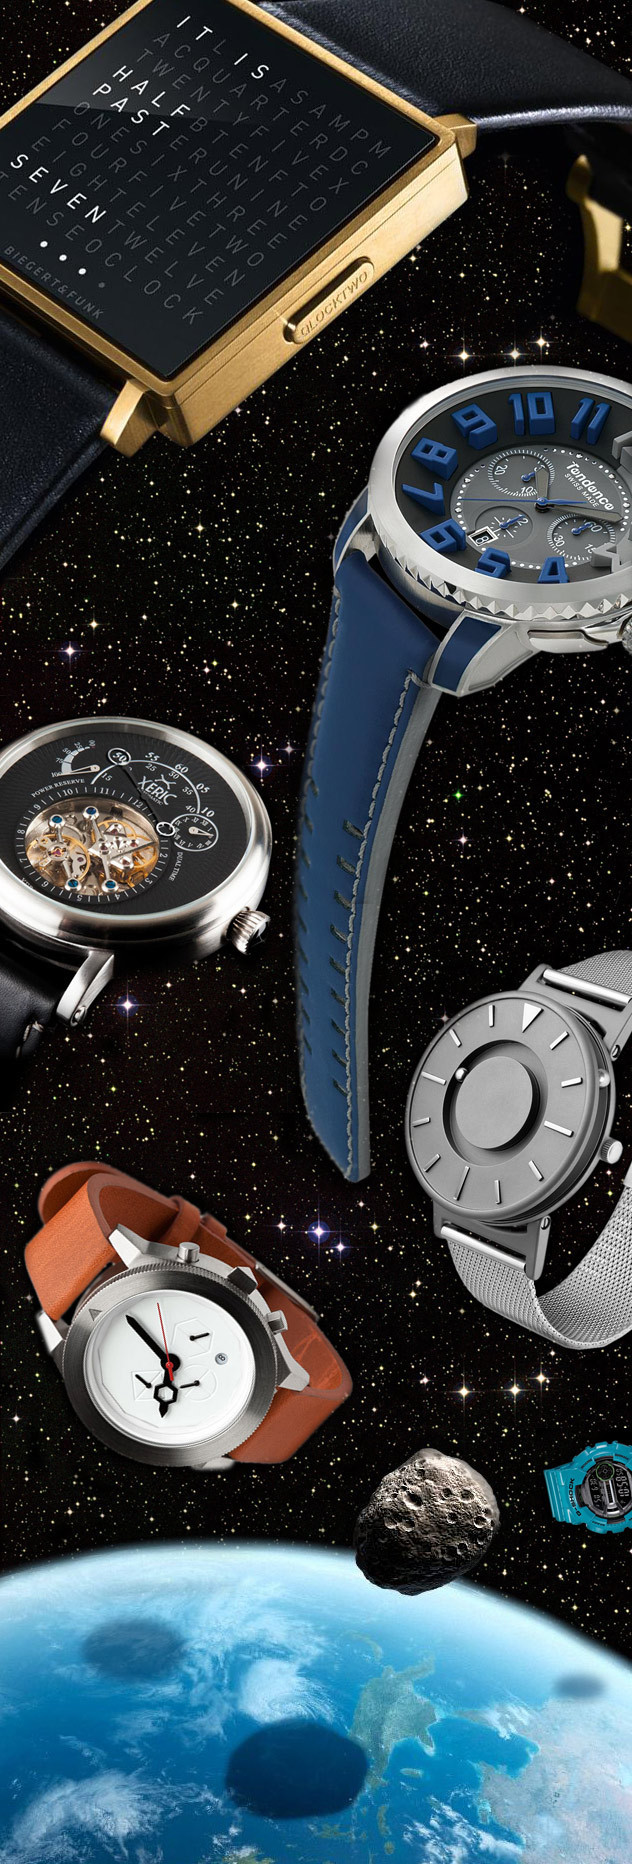 space-watches